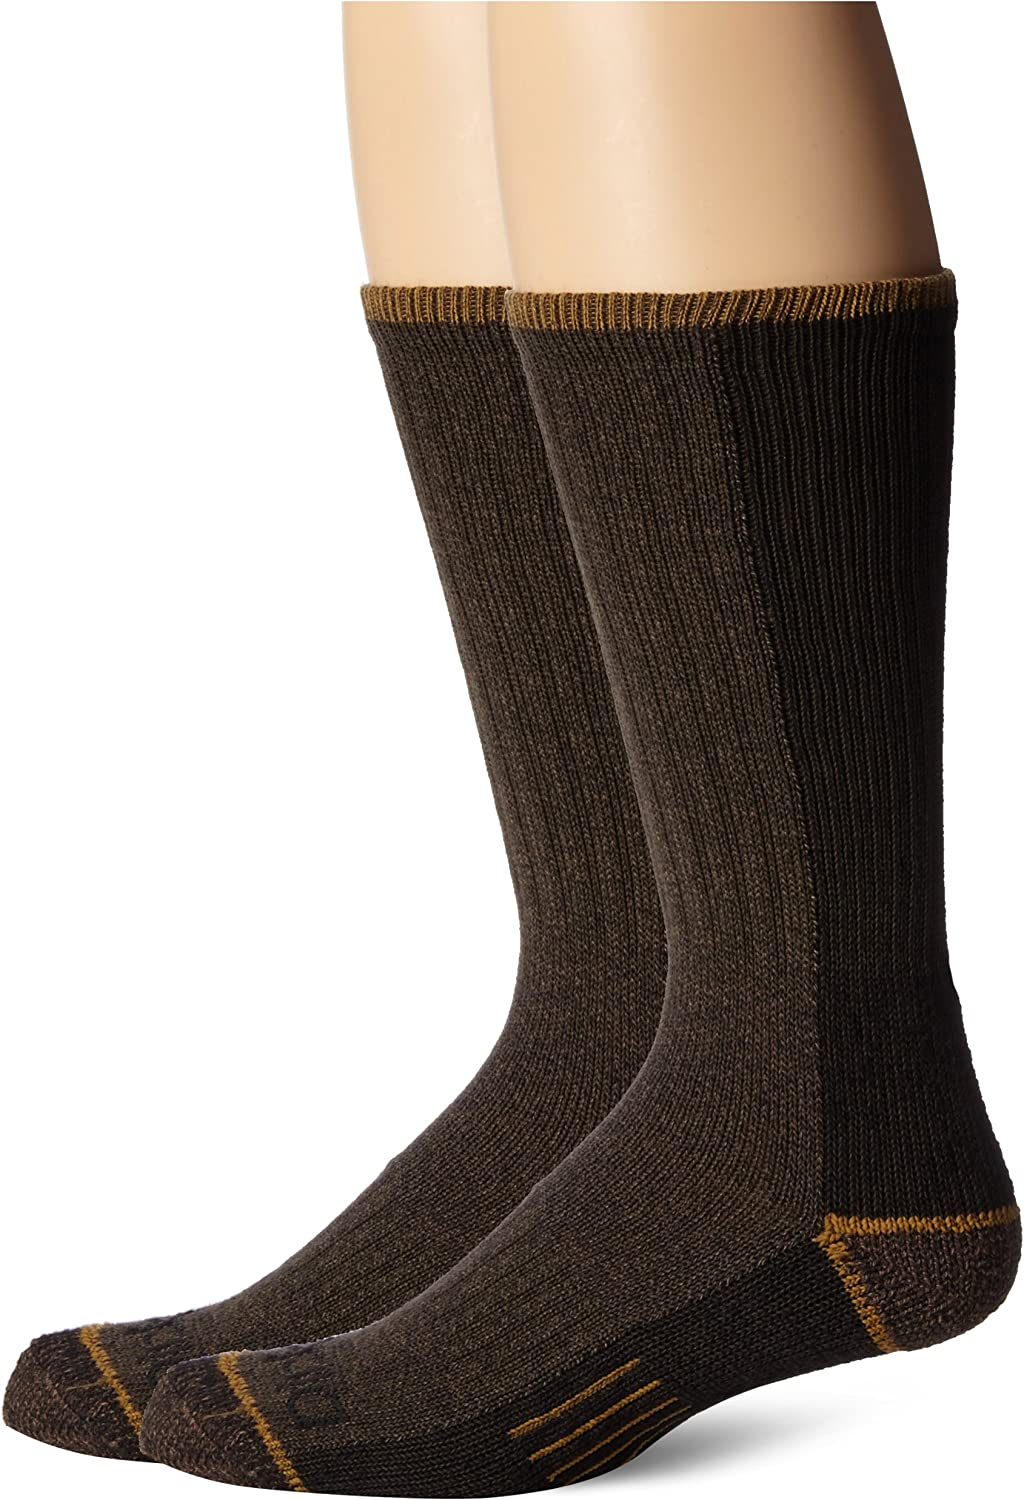 Dickies Mens 2 Pack Steel Toe Cotton Crew Sock Size: 10-13 Shoe Size: 6-12 Olive